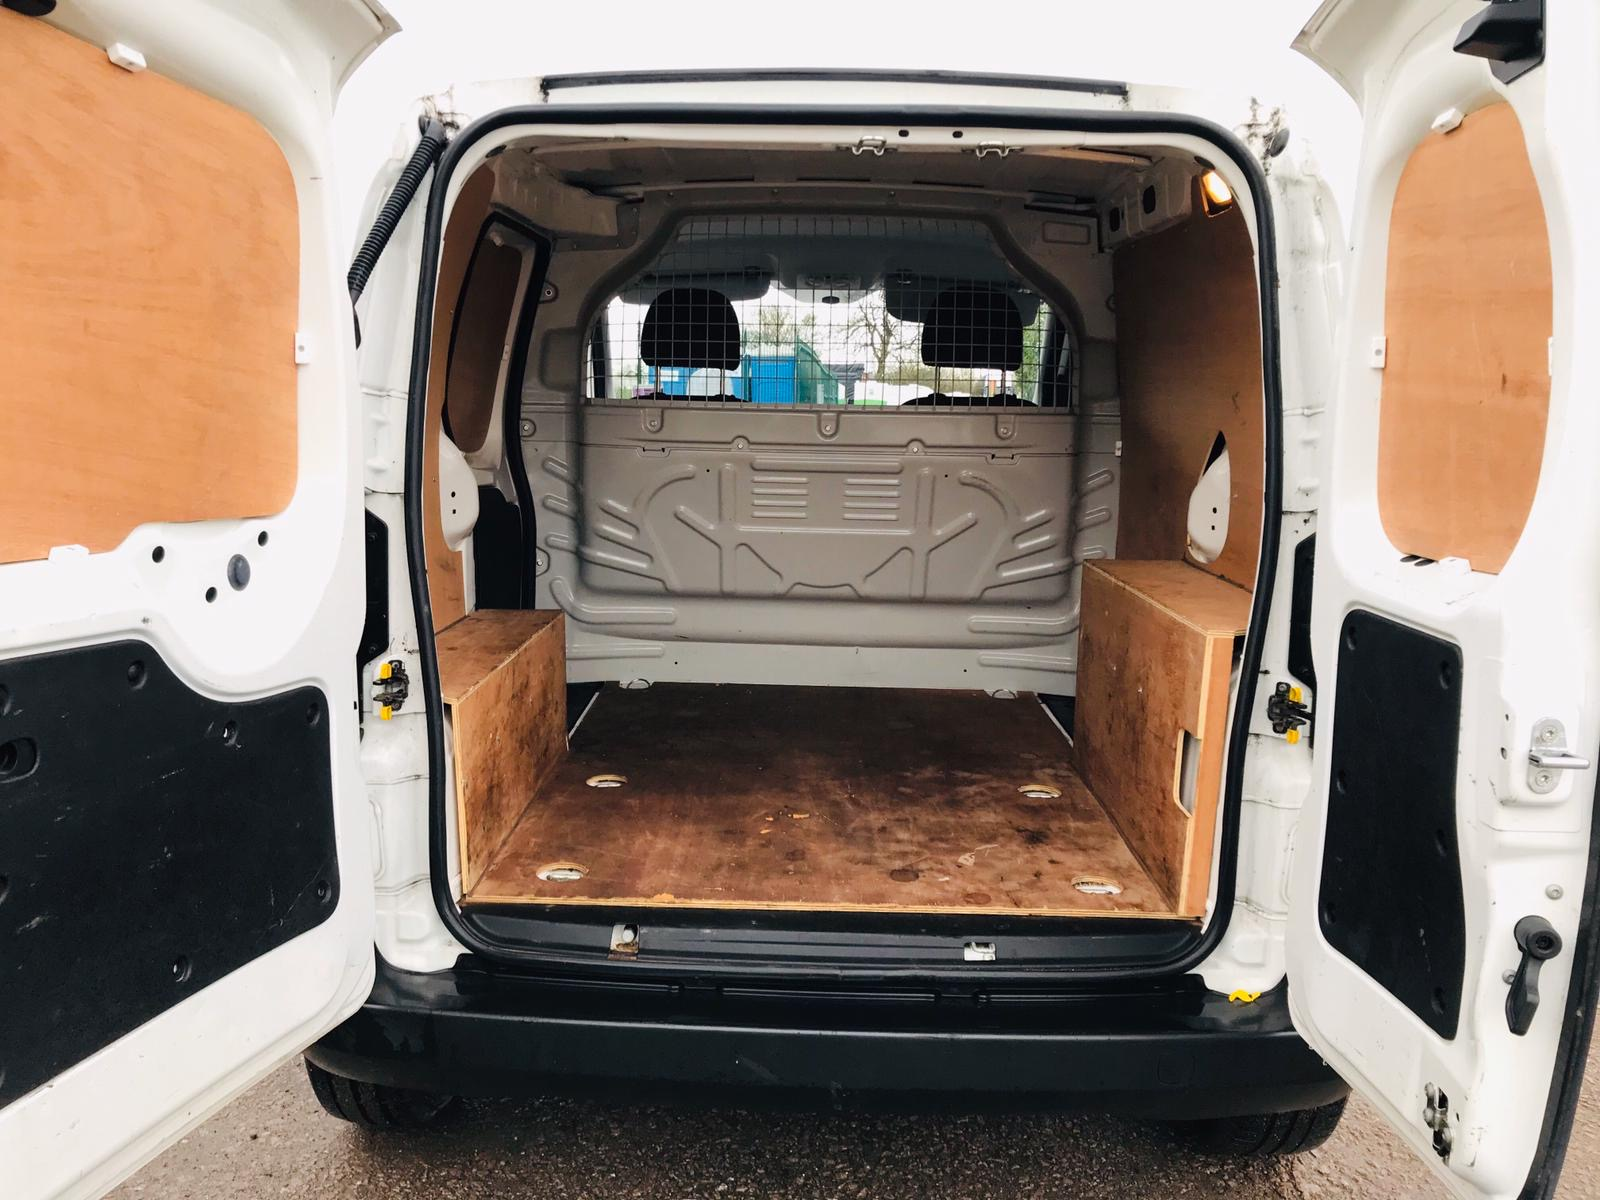 """(ON SALE) PEUGEOT BIPPER 1.3""""HDI"""" PROFESSIONAL - 2016 MODEL - 1 OWNER - FSH - AIR CON - SLD - Image 9 of 13"""